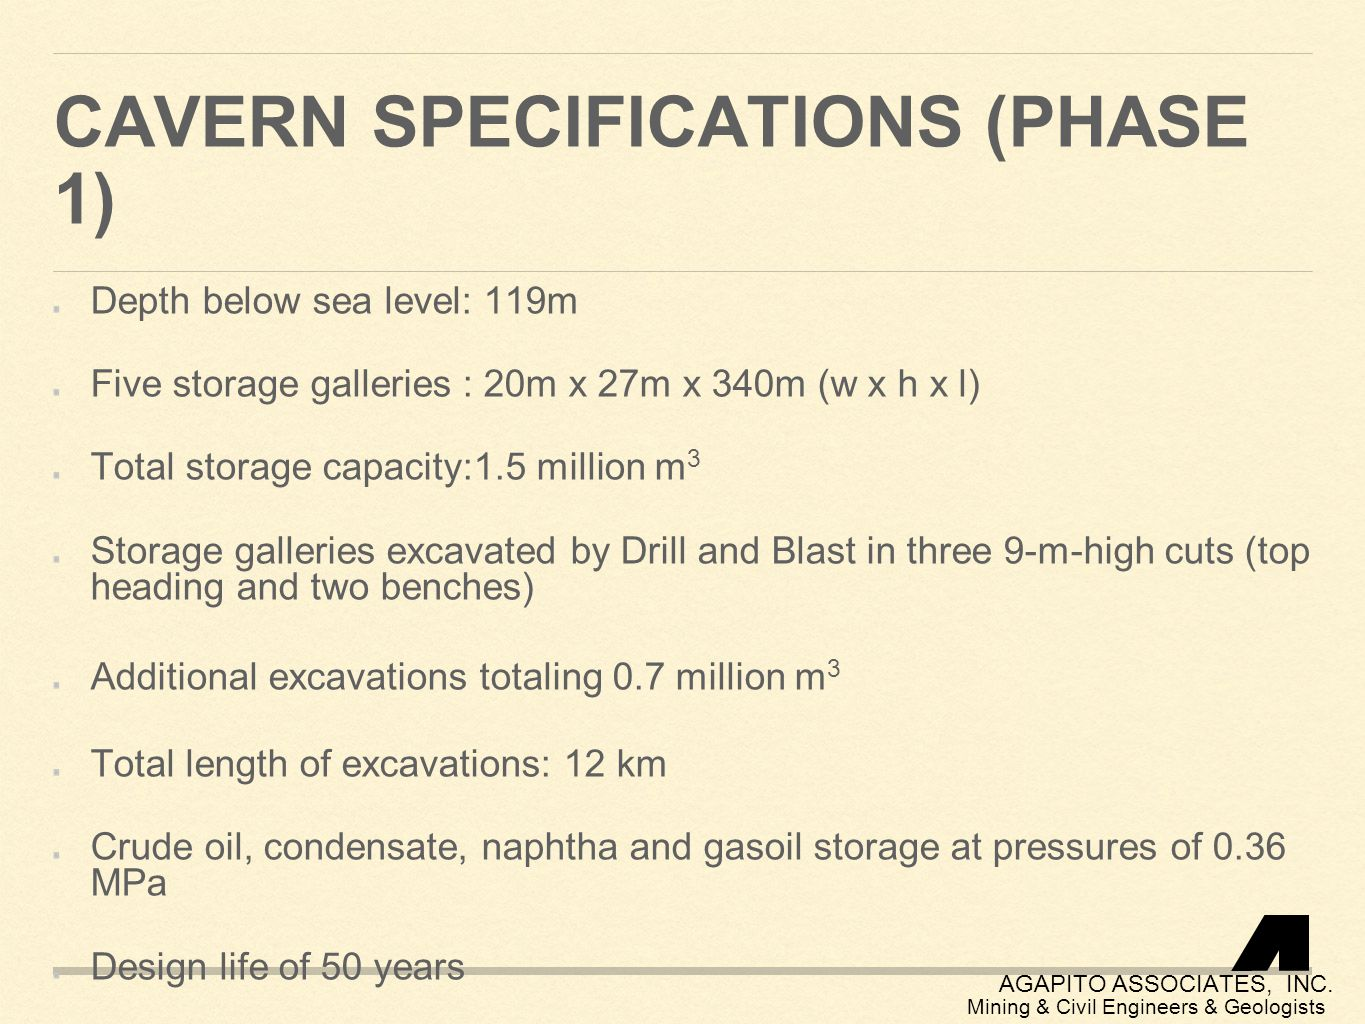 Cavern Specifications (Phase 1)